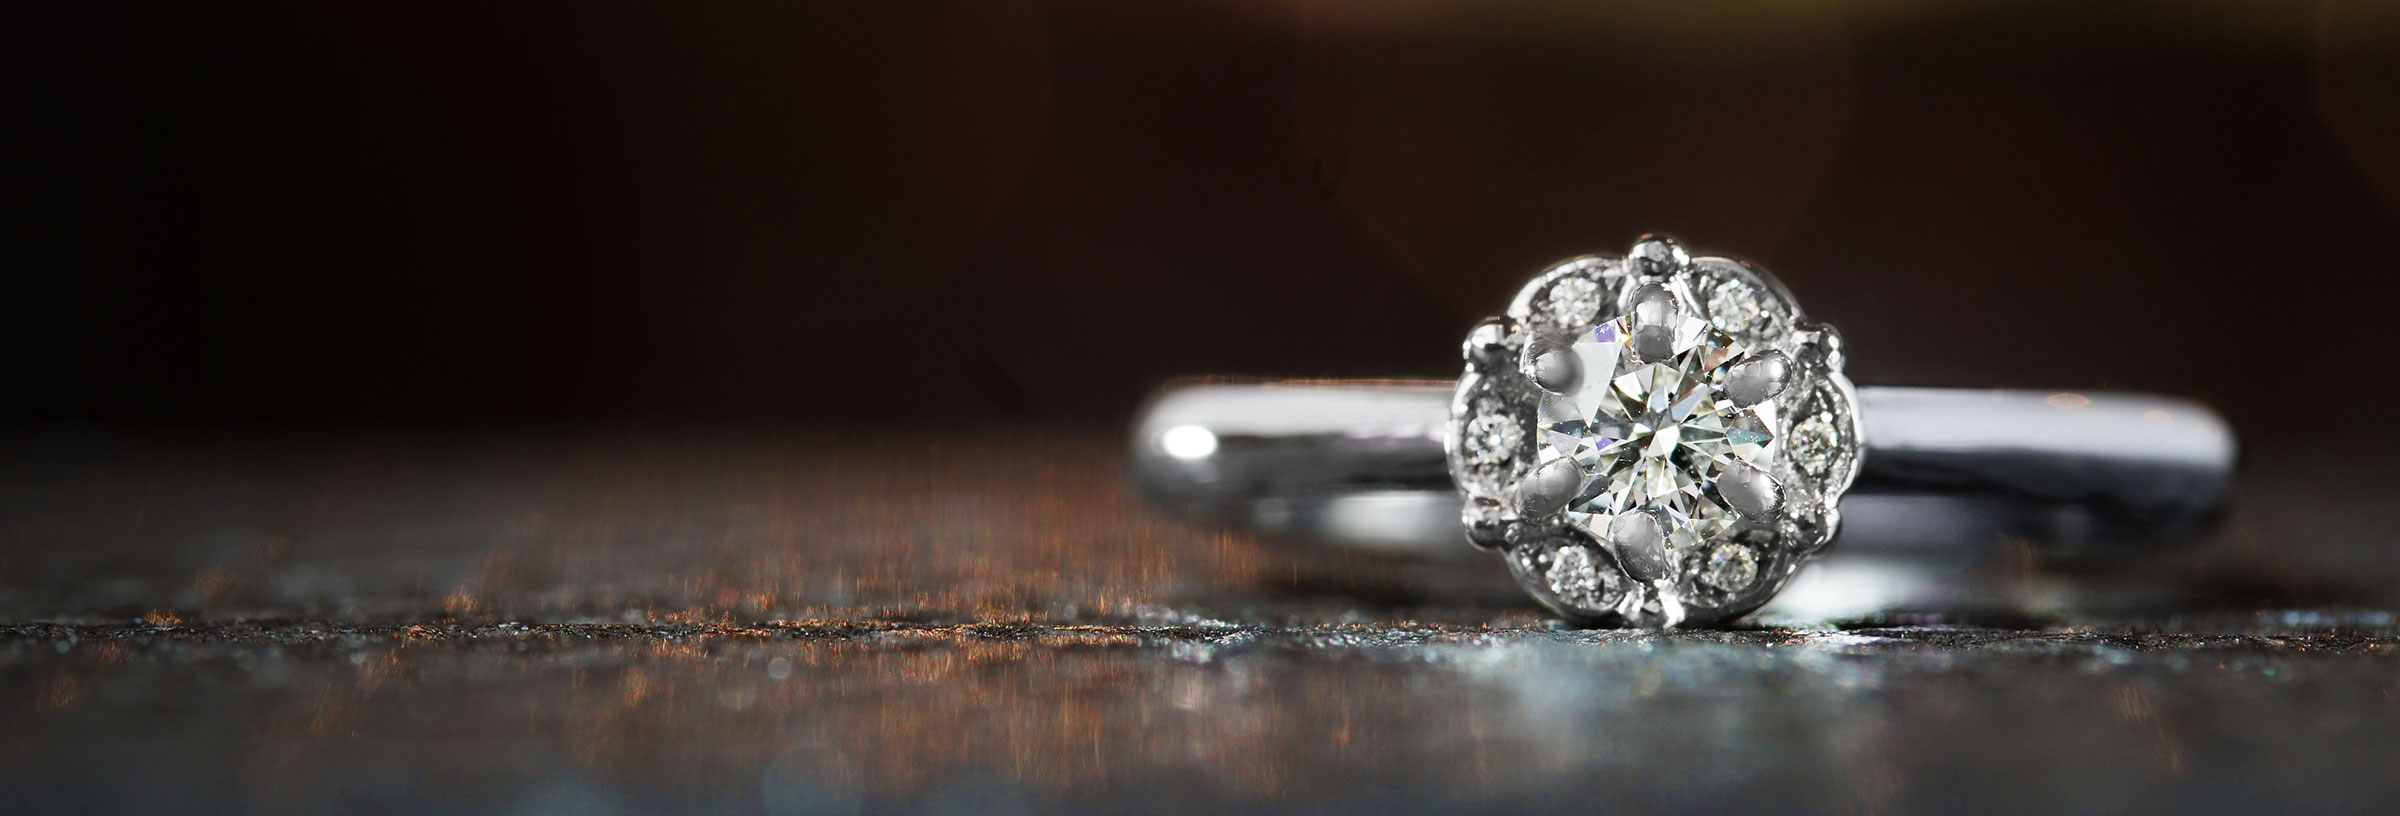 palladium-and-diamond-floral-cluster-engagement-ring